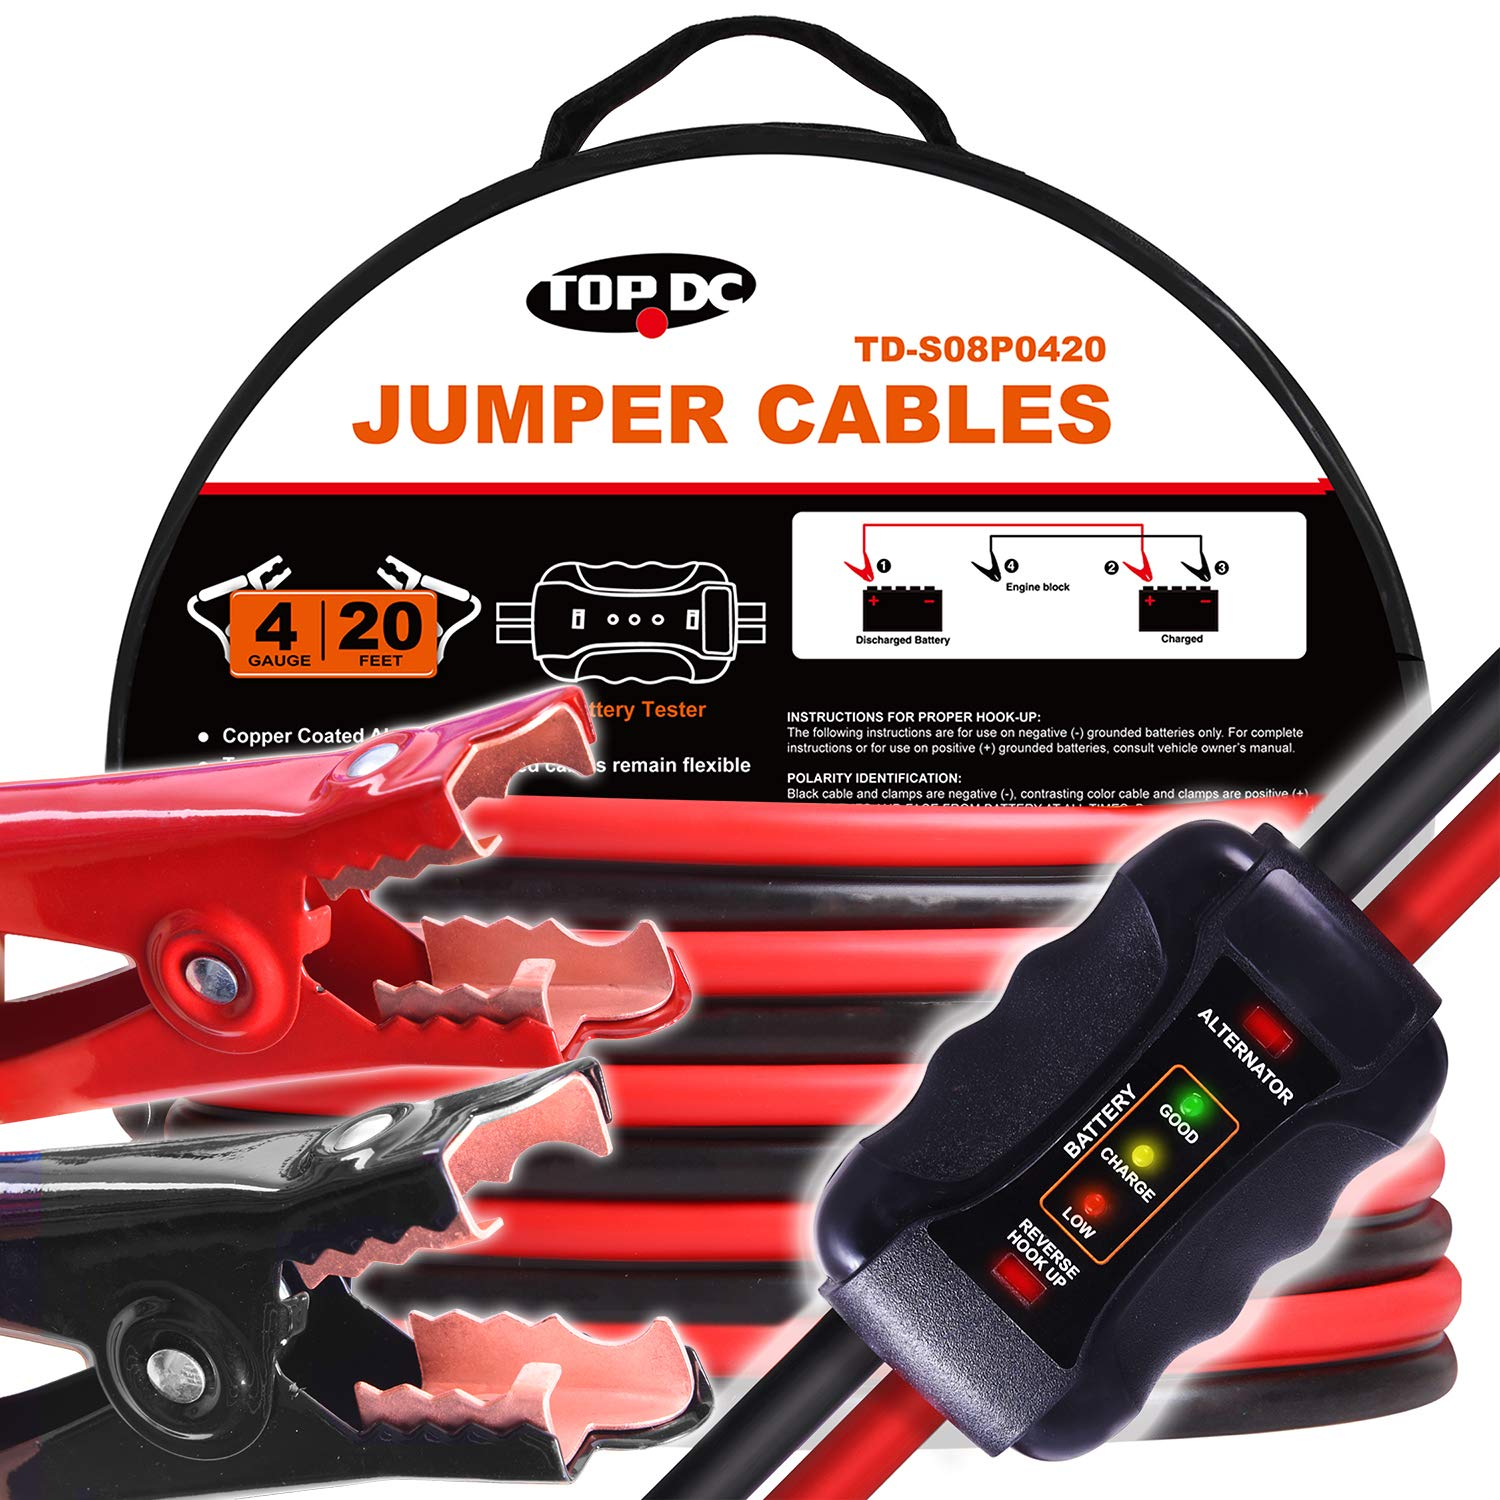 TOPDC Smart Jumper Cables 4 Gauge 20 Feet Heavy Duty Booster Cables with Reverse Hook Up and Alternator Indicator, Battery Condition Tester (4AWG x 20Ft) by TOPDC